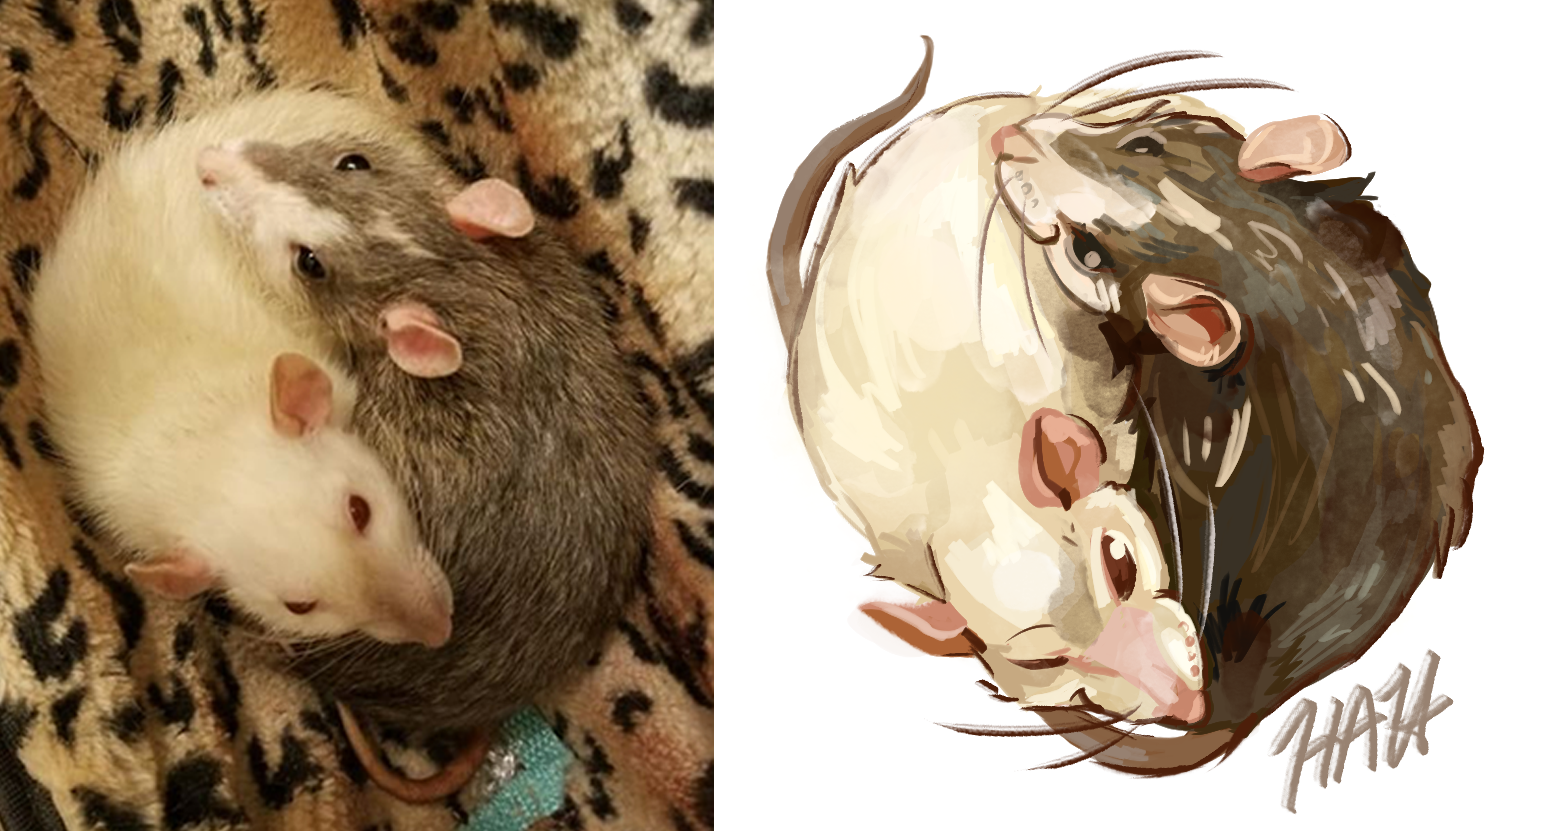 Rat Yin and Yang Commission